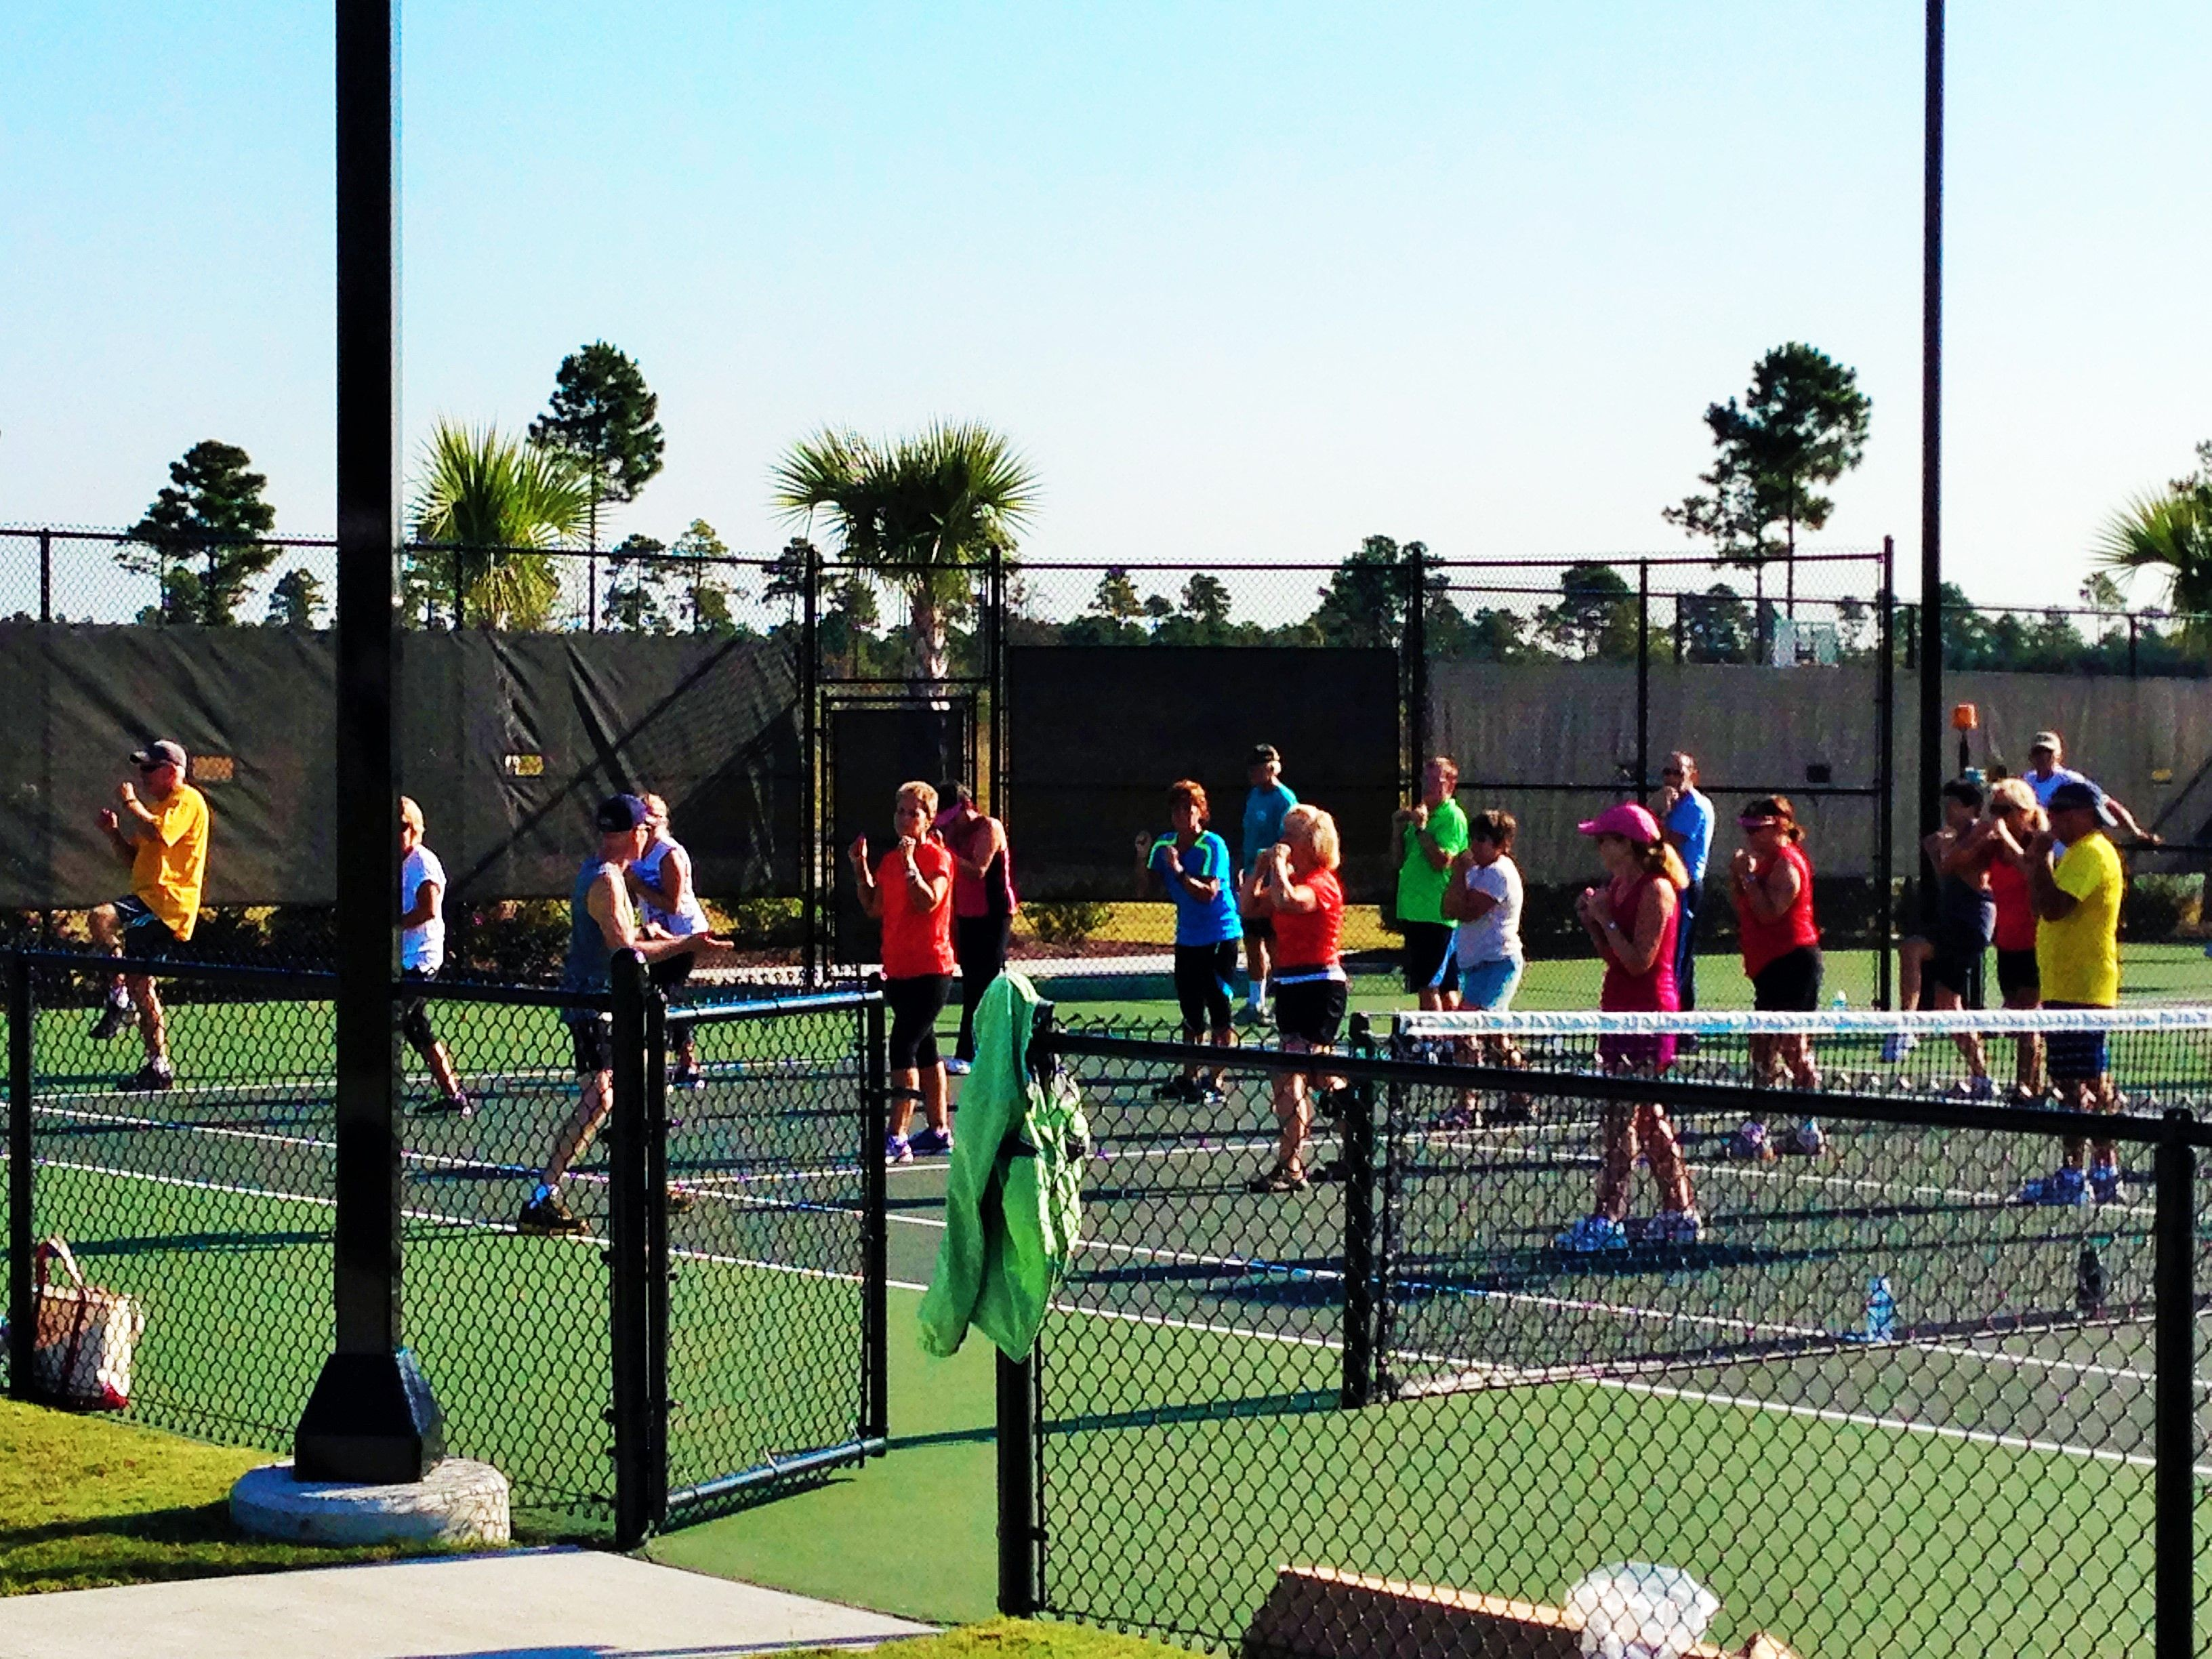 Group exercise on the tennis court CompassPointeNC NC